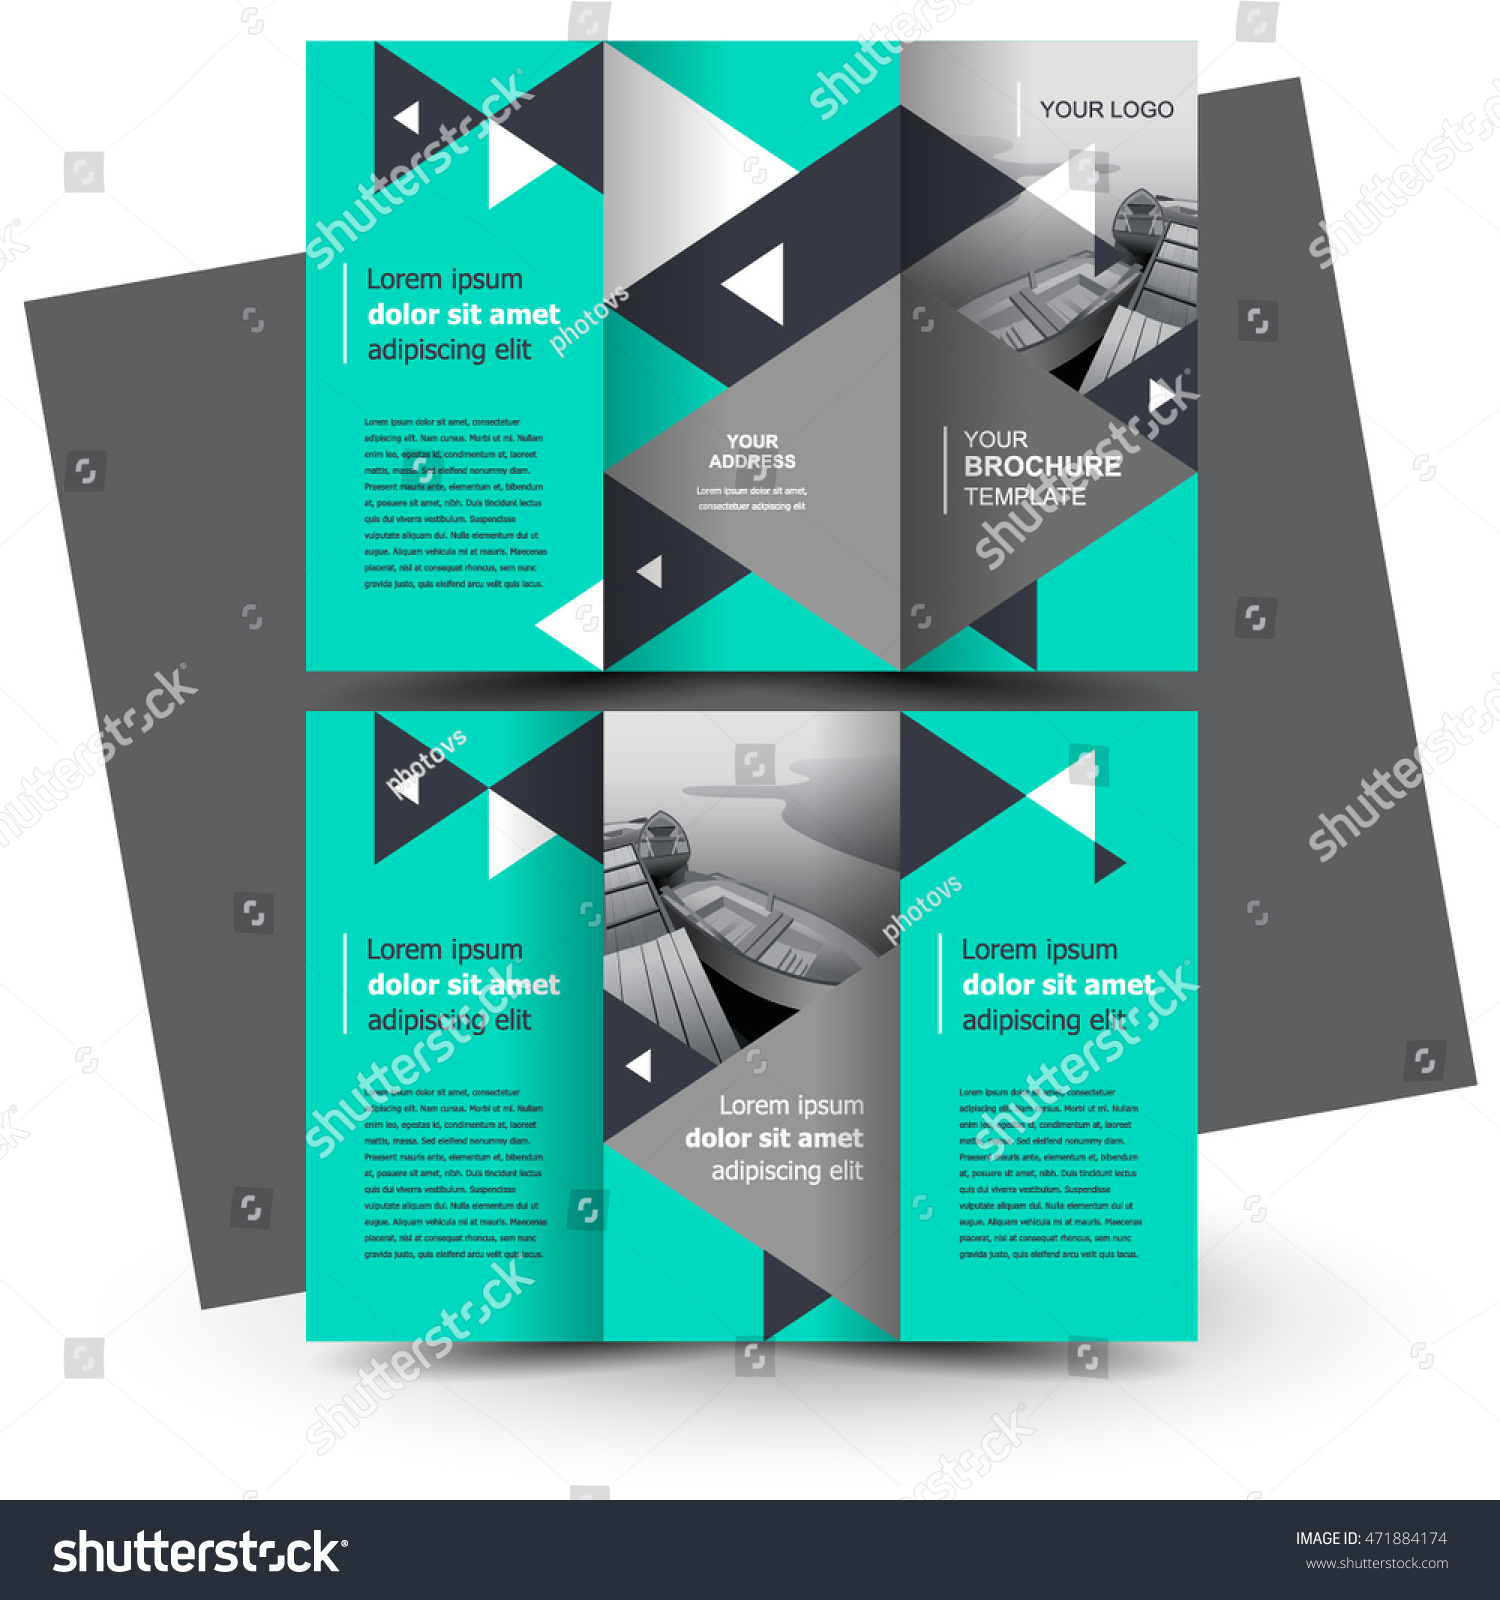 business brochures templates - brochure design templates brochure template design vector